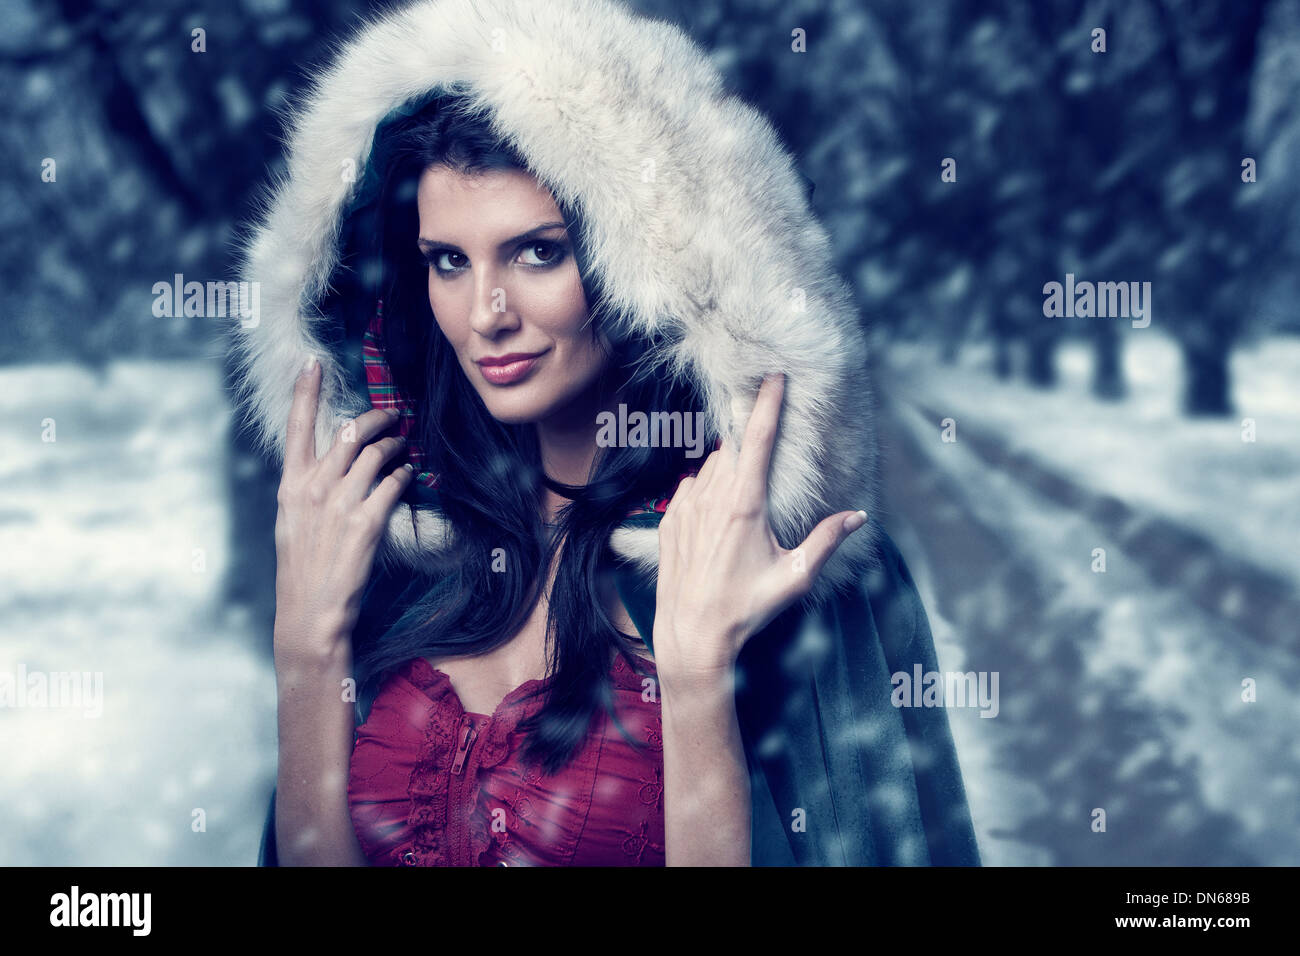 Woman in cape with hood standing on wooded path in the snow - Stock Image